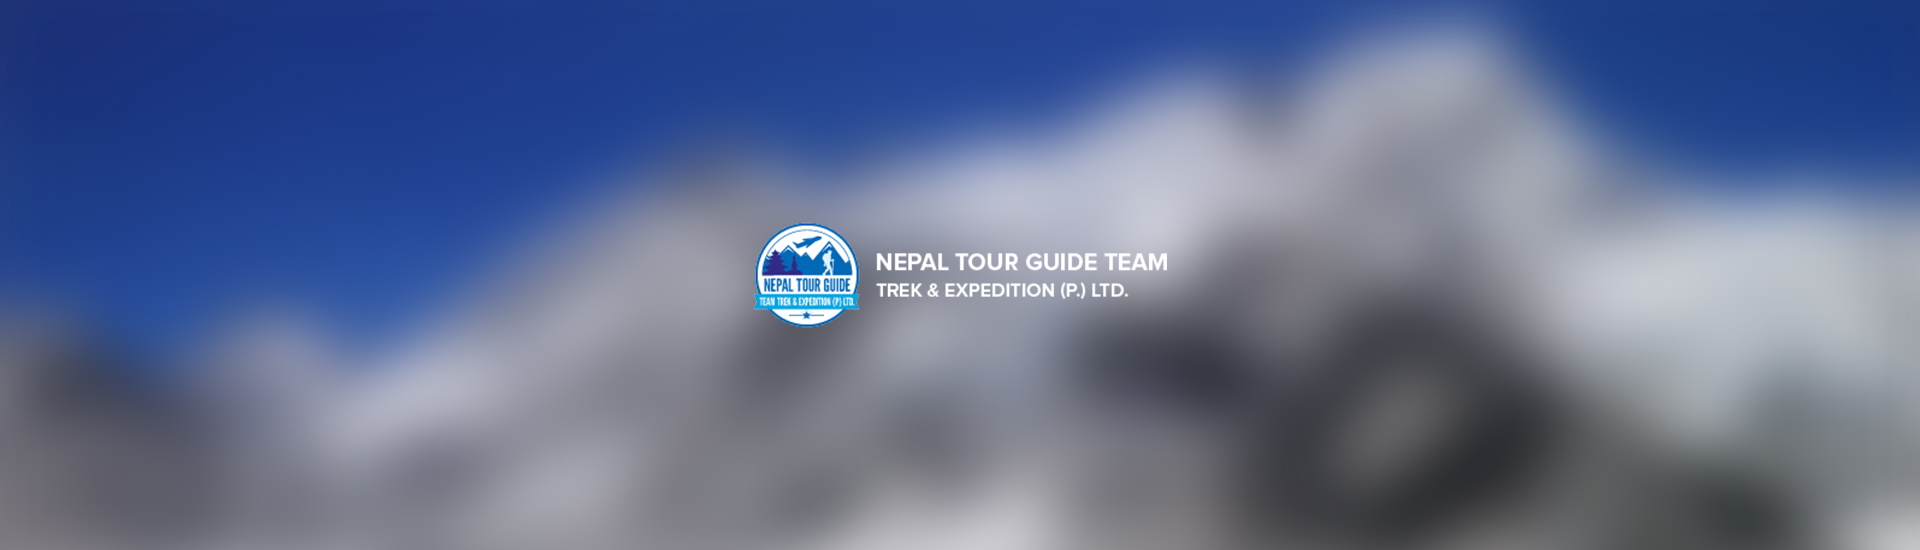 Tour Guide in Nepal